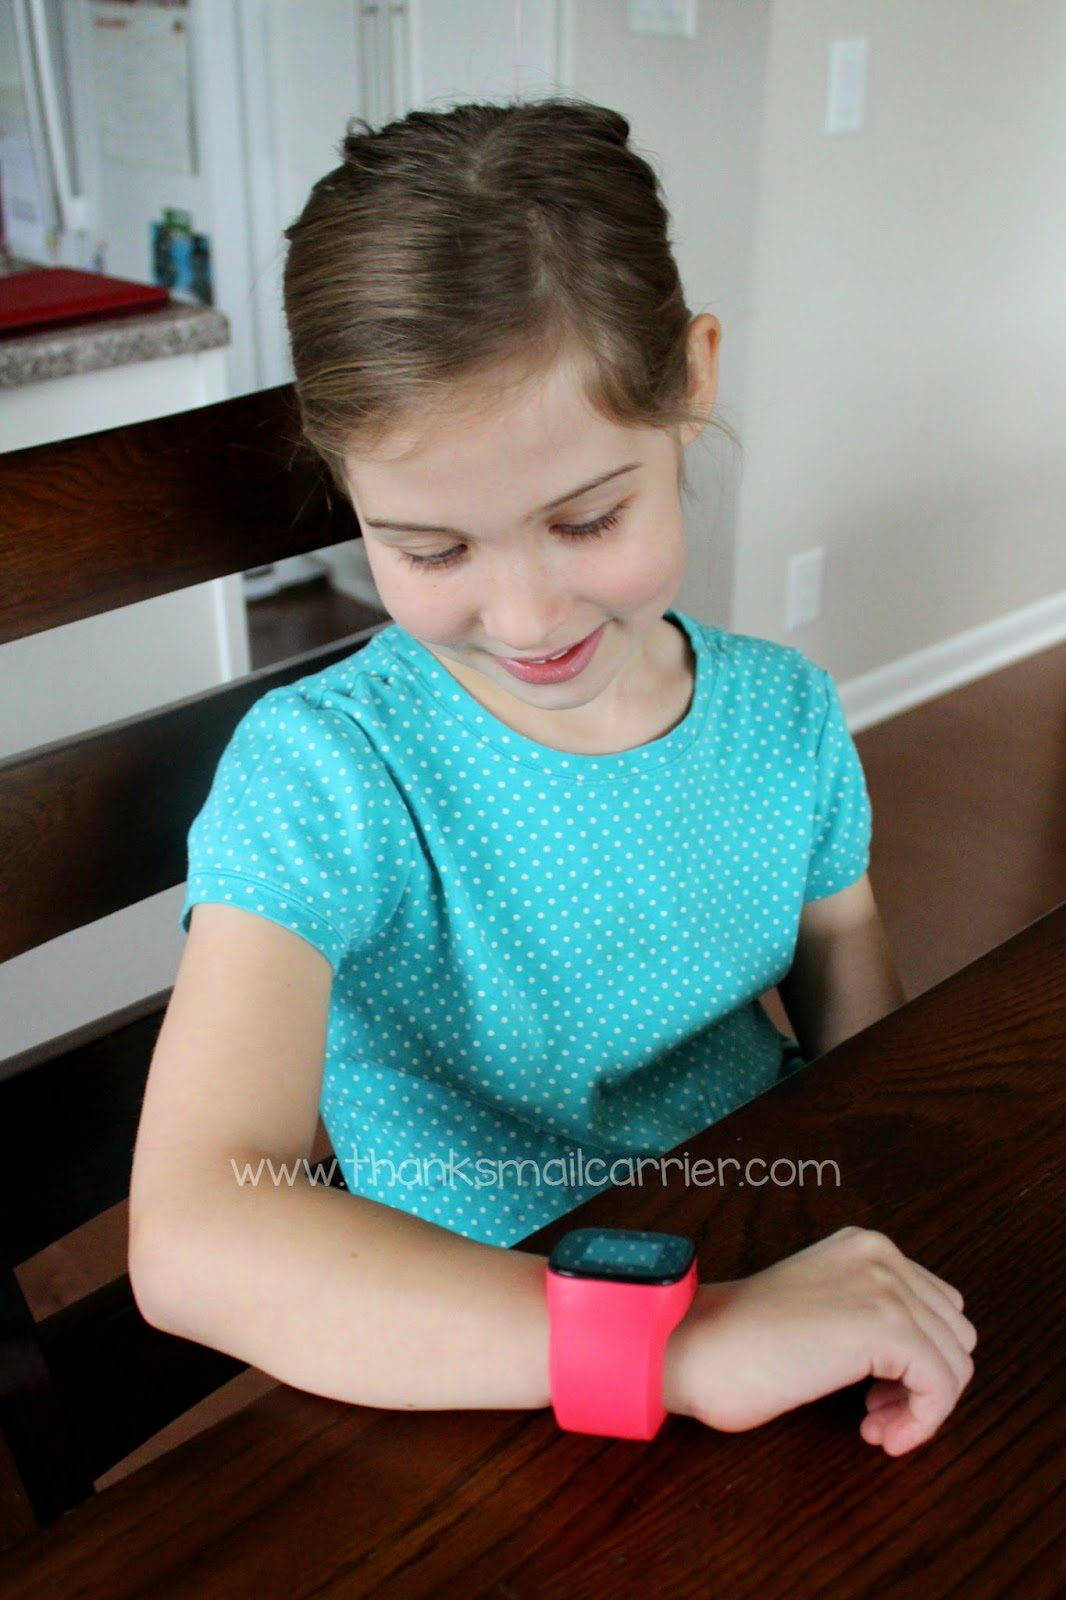 FiLIP 2 kids phone watch